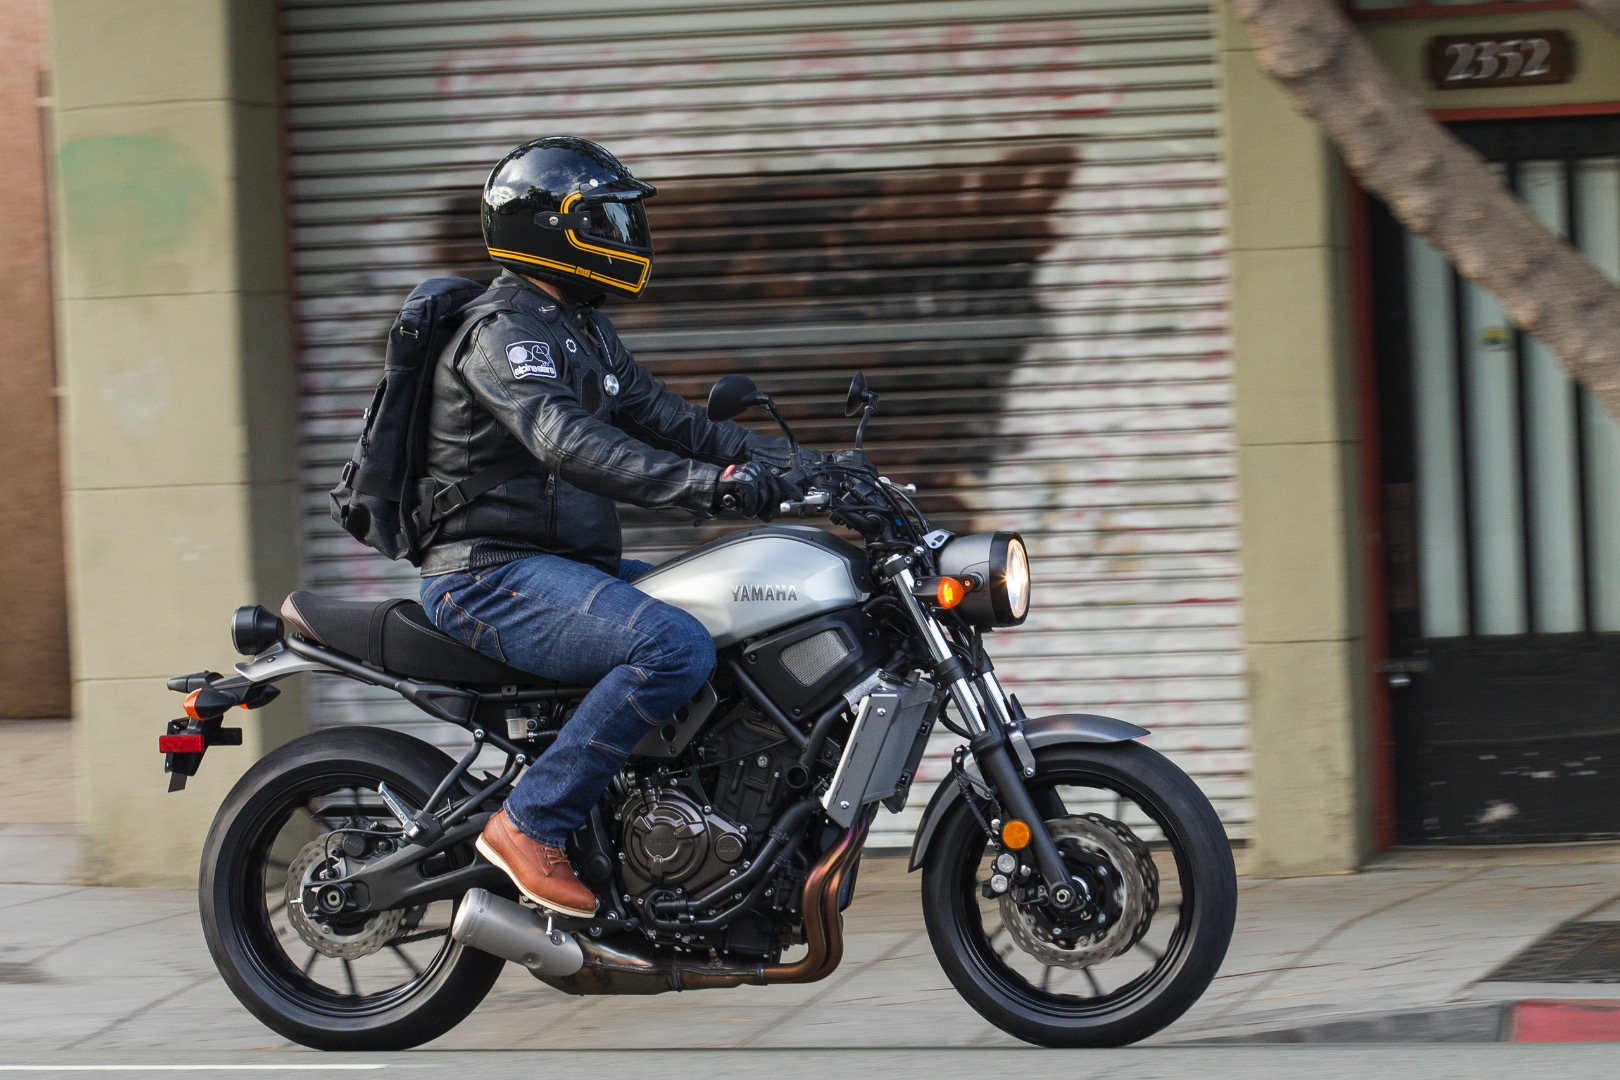 2018 Yamaha XSR700 Review | 14 Fast Facts